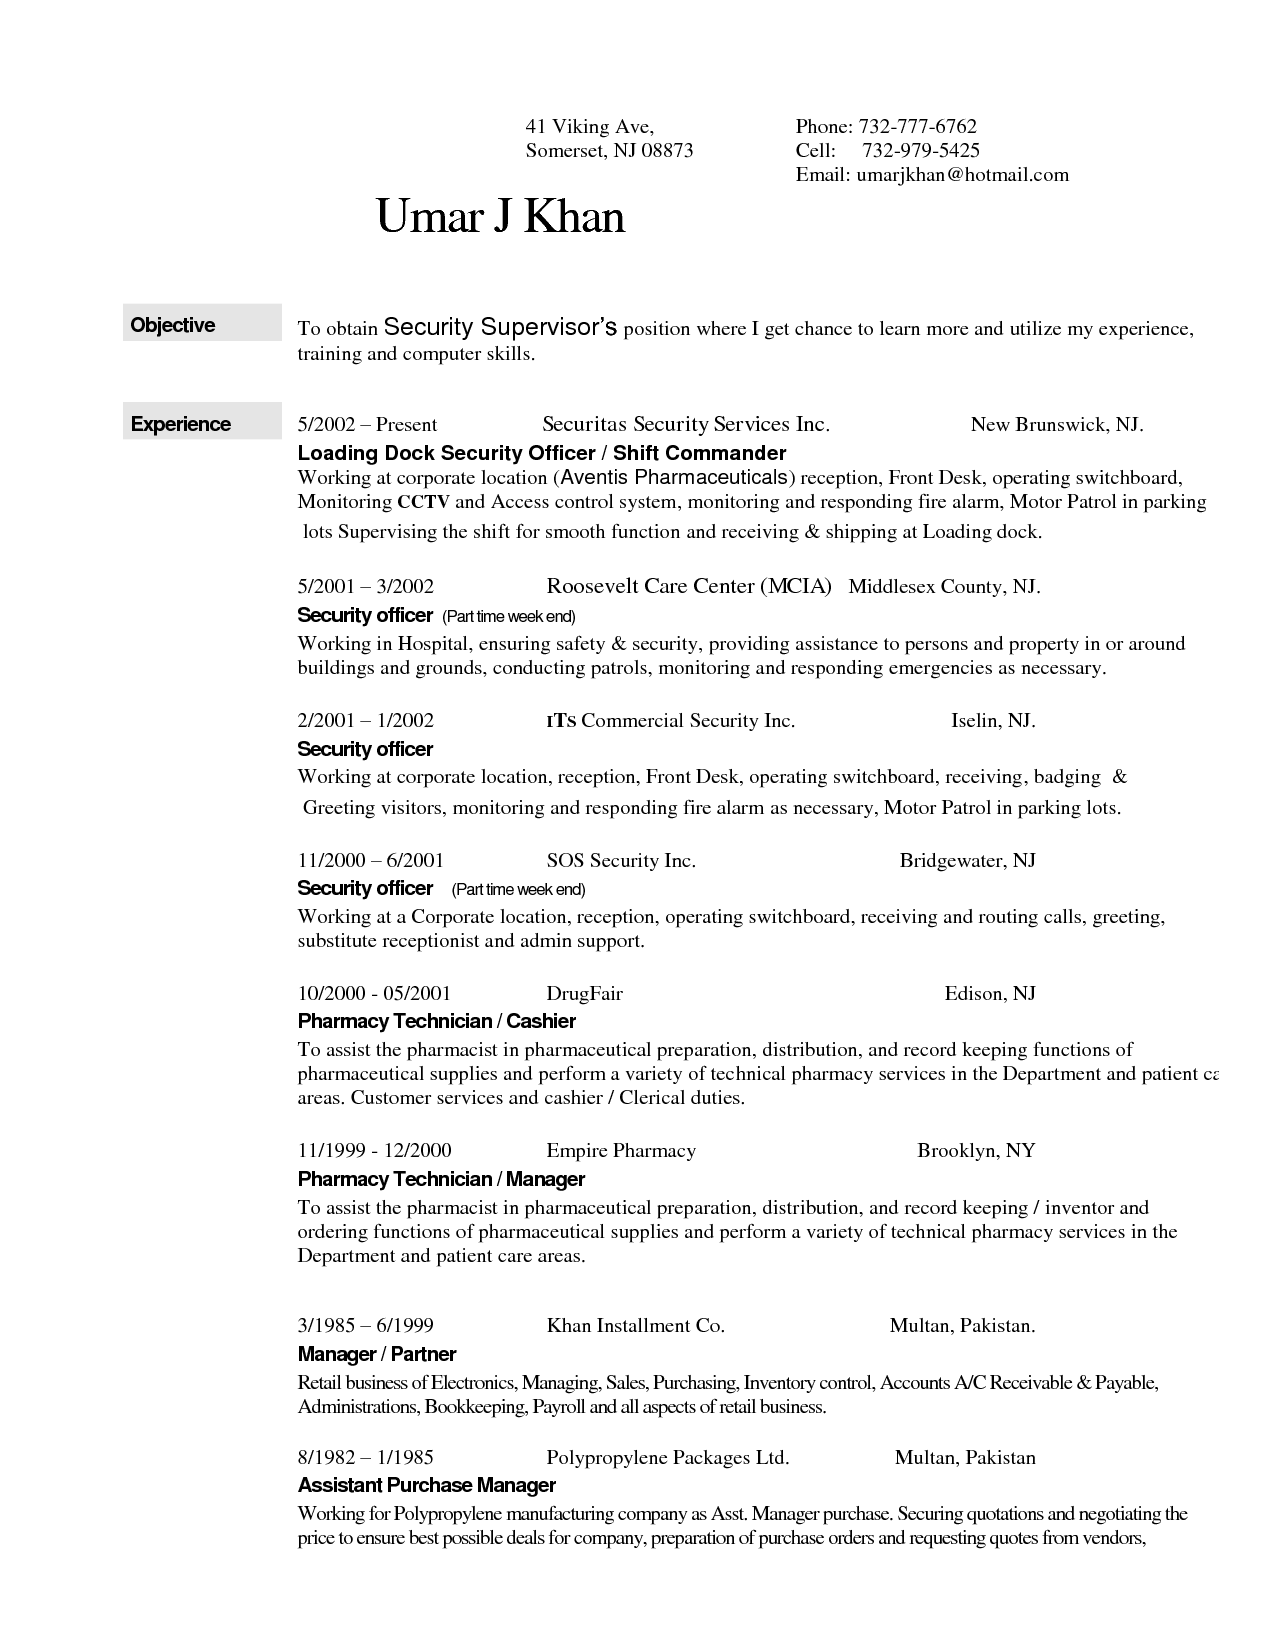 Merveilleux Entry Level Security Guard Resume Examples   Http://www.jobresume.website